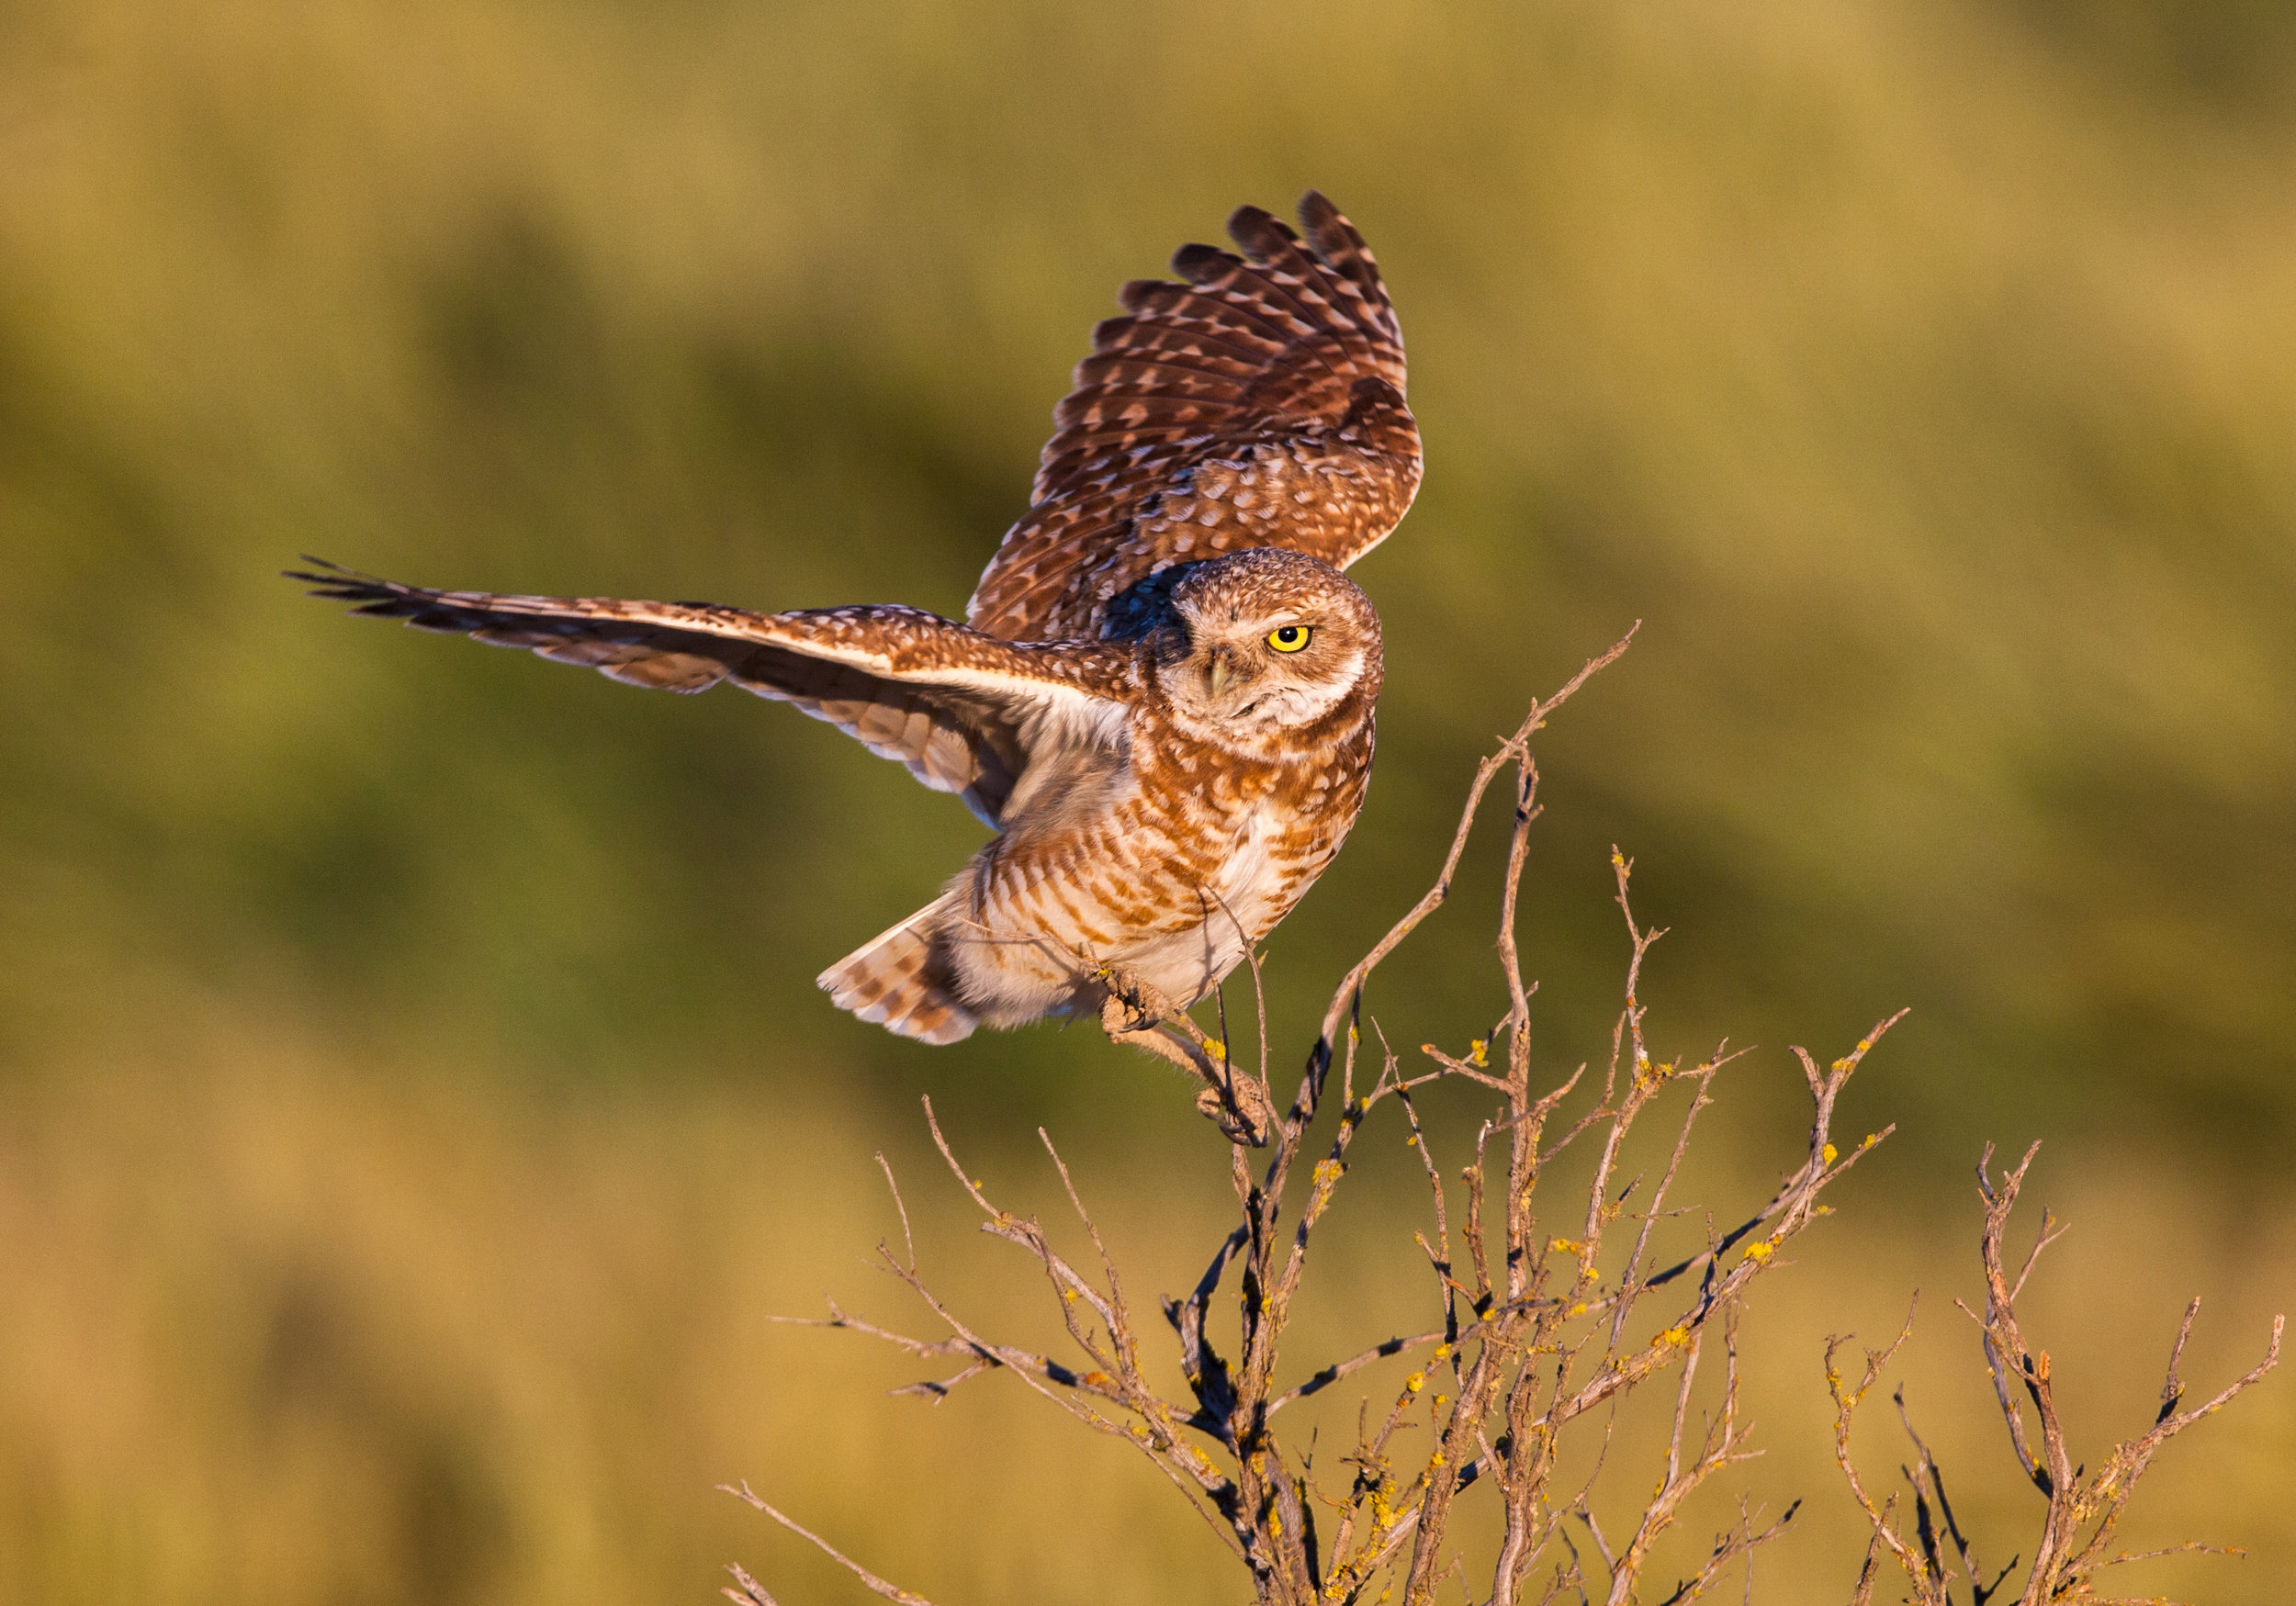 Paul Bannick's startling images reflect behaviors shared by all owls, as well as some surprising exceptions and adaptations.